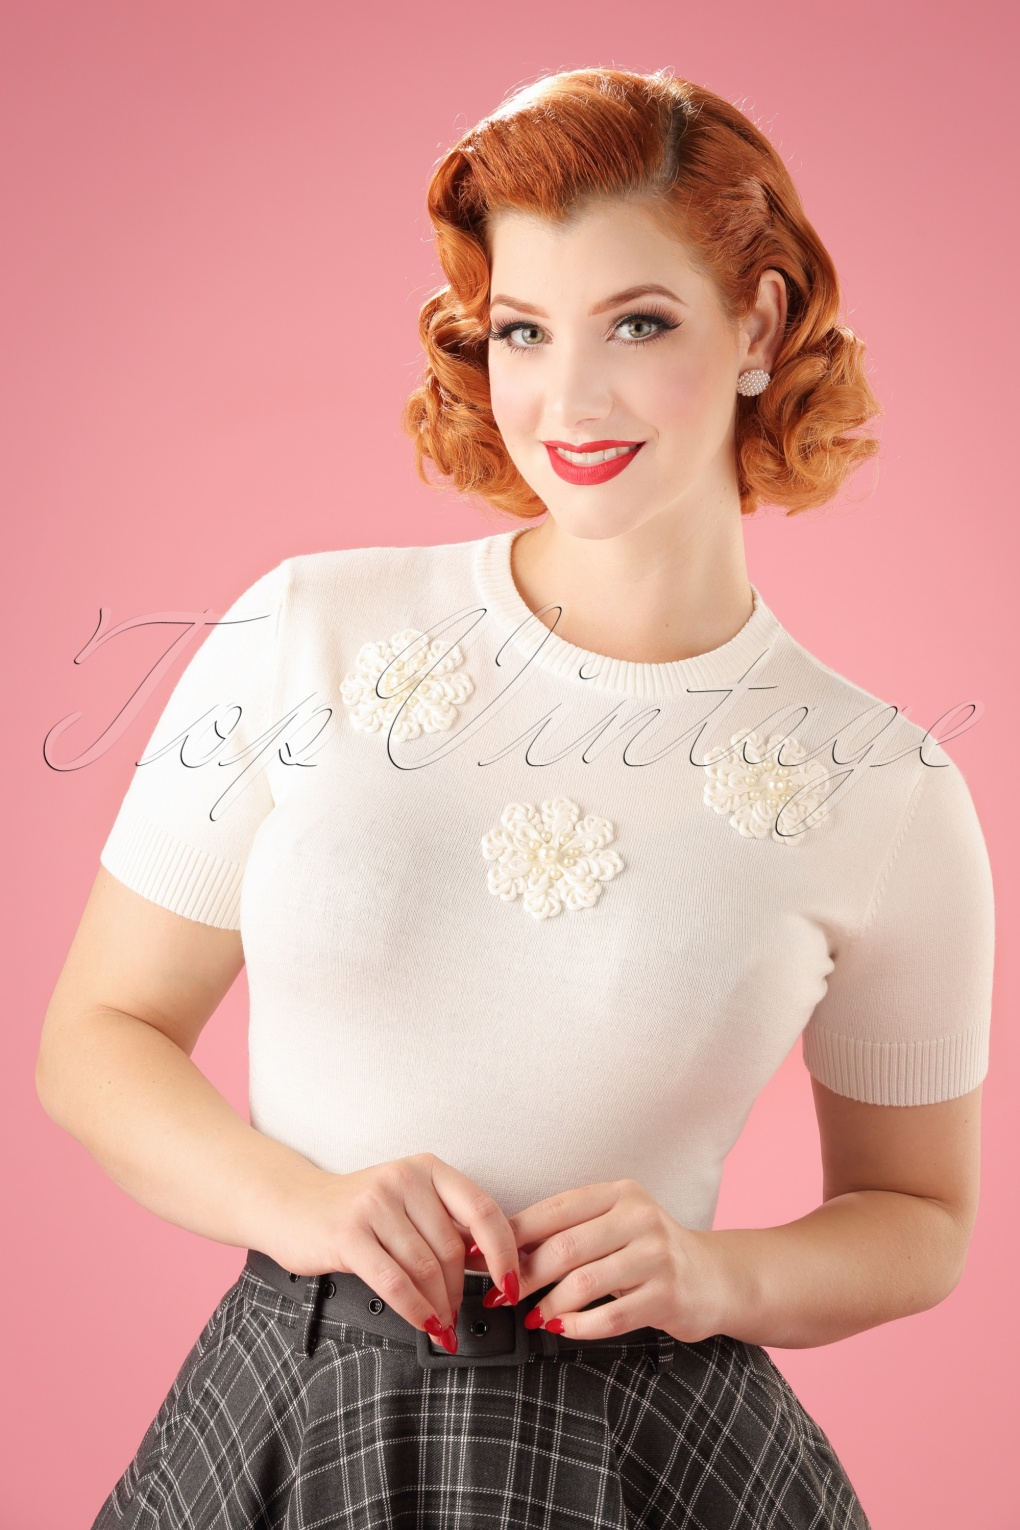 Vintage Sweaters: Cable Knit, Fair Isle Cardigans & Sweaters 50s Joyanne Snowflake Sweater in White £33.64 AT vintagedancer.com